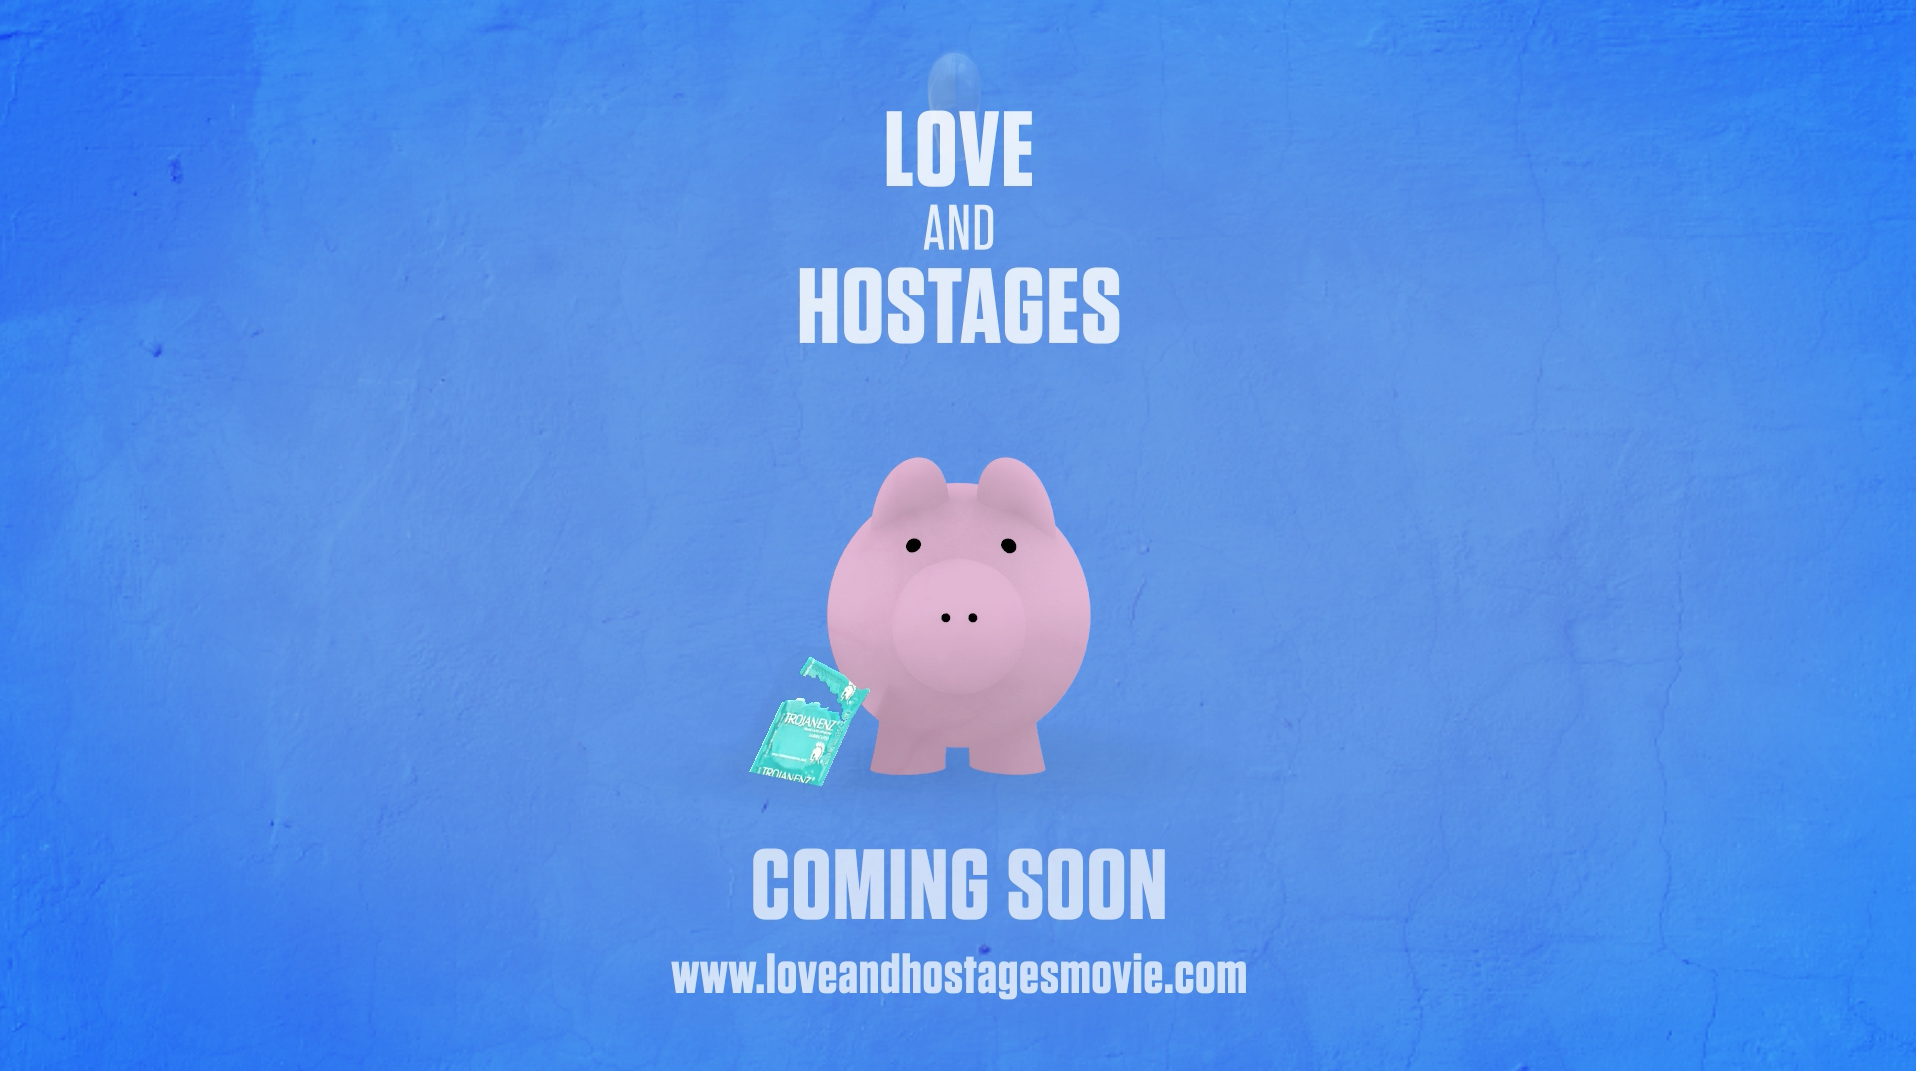 LOVE & HOSTAGES ANIMATED POSTER COMING SOON!   http://www.loveandhostagesmovie.com/